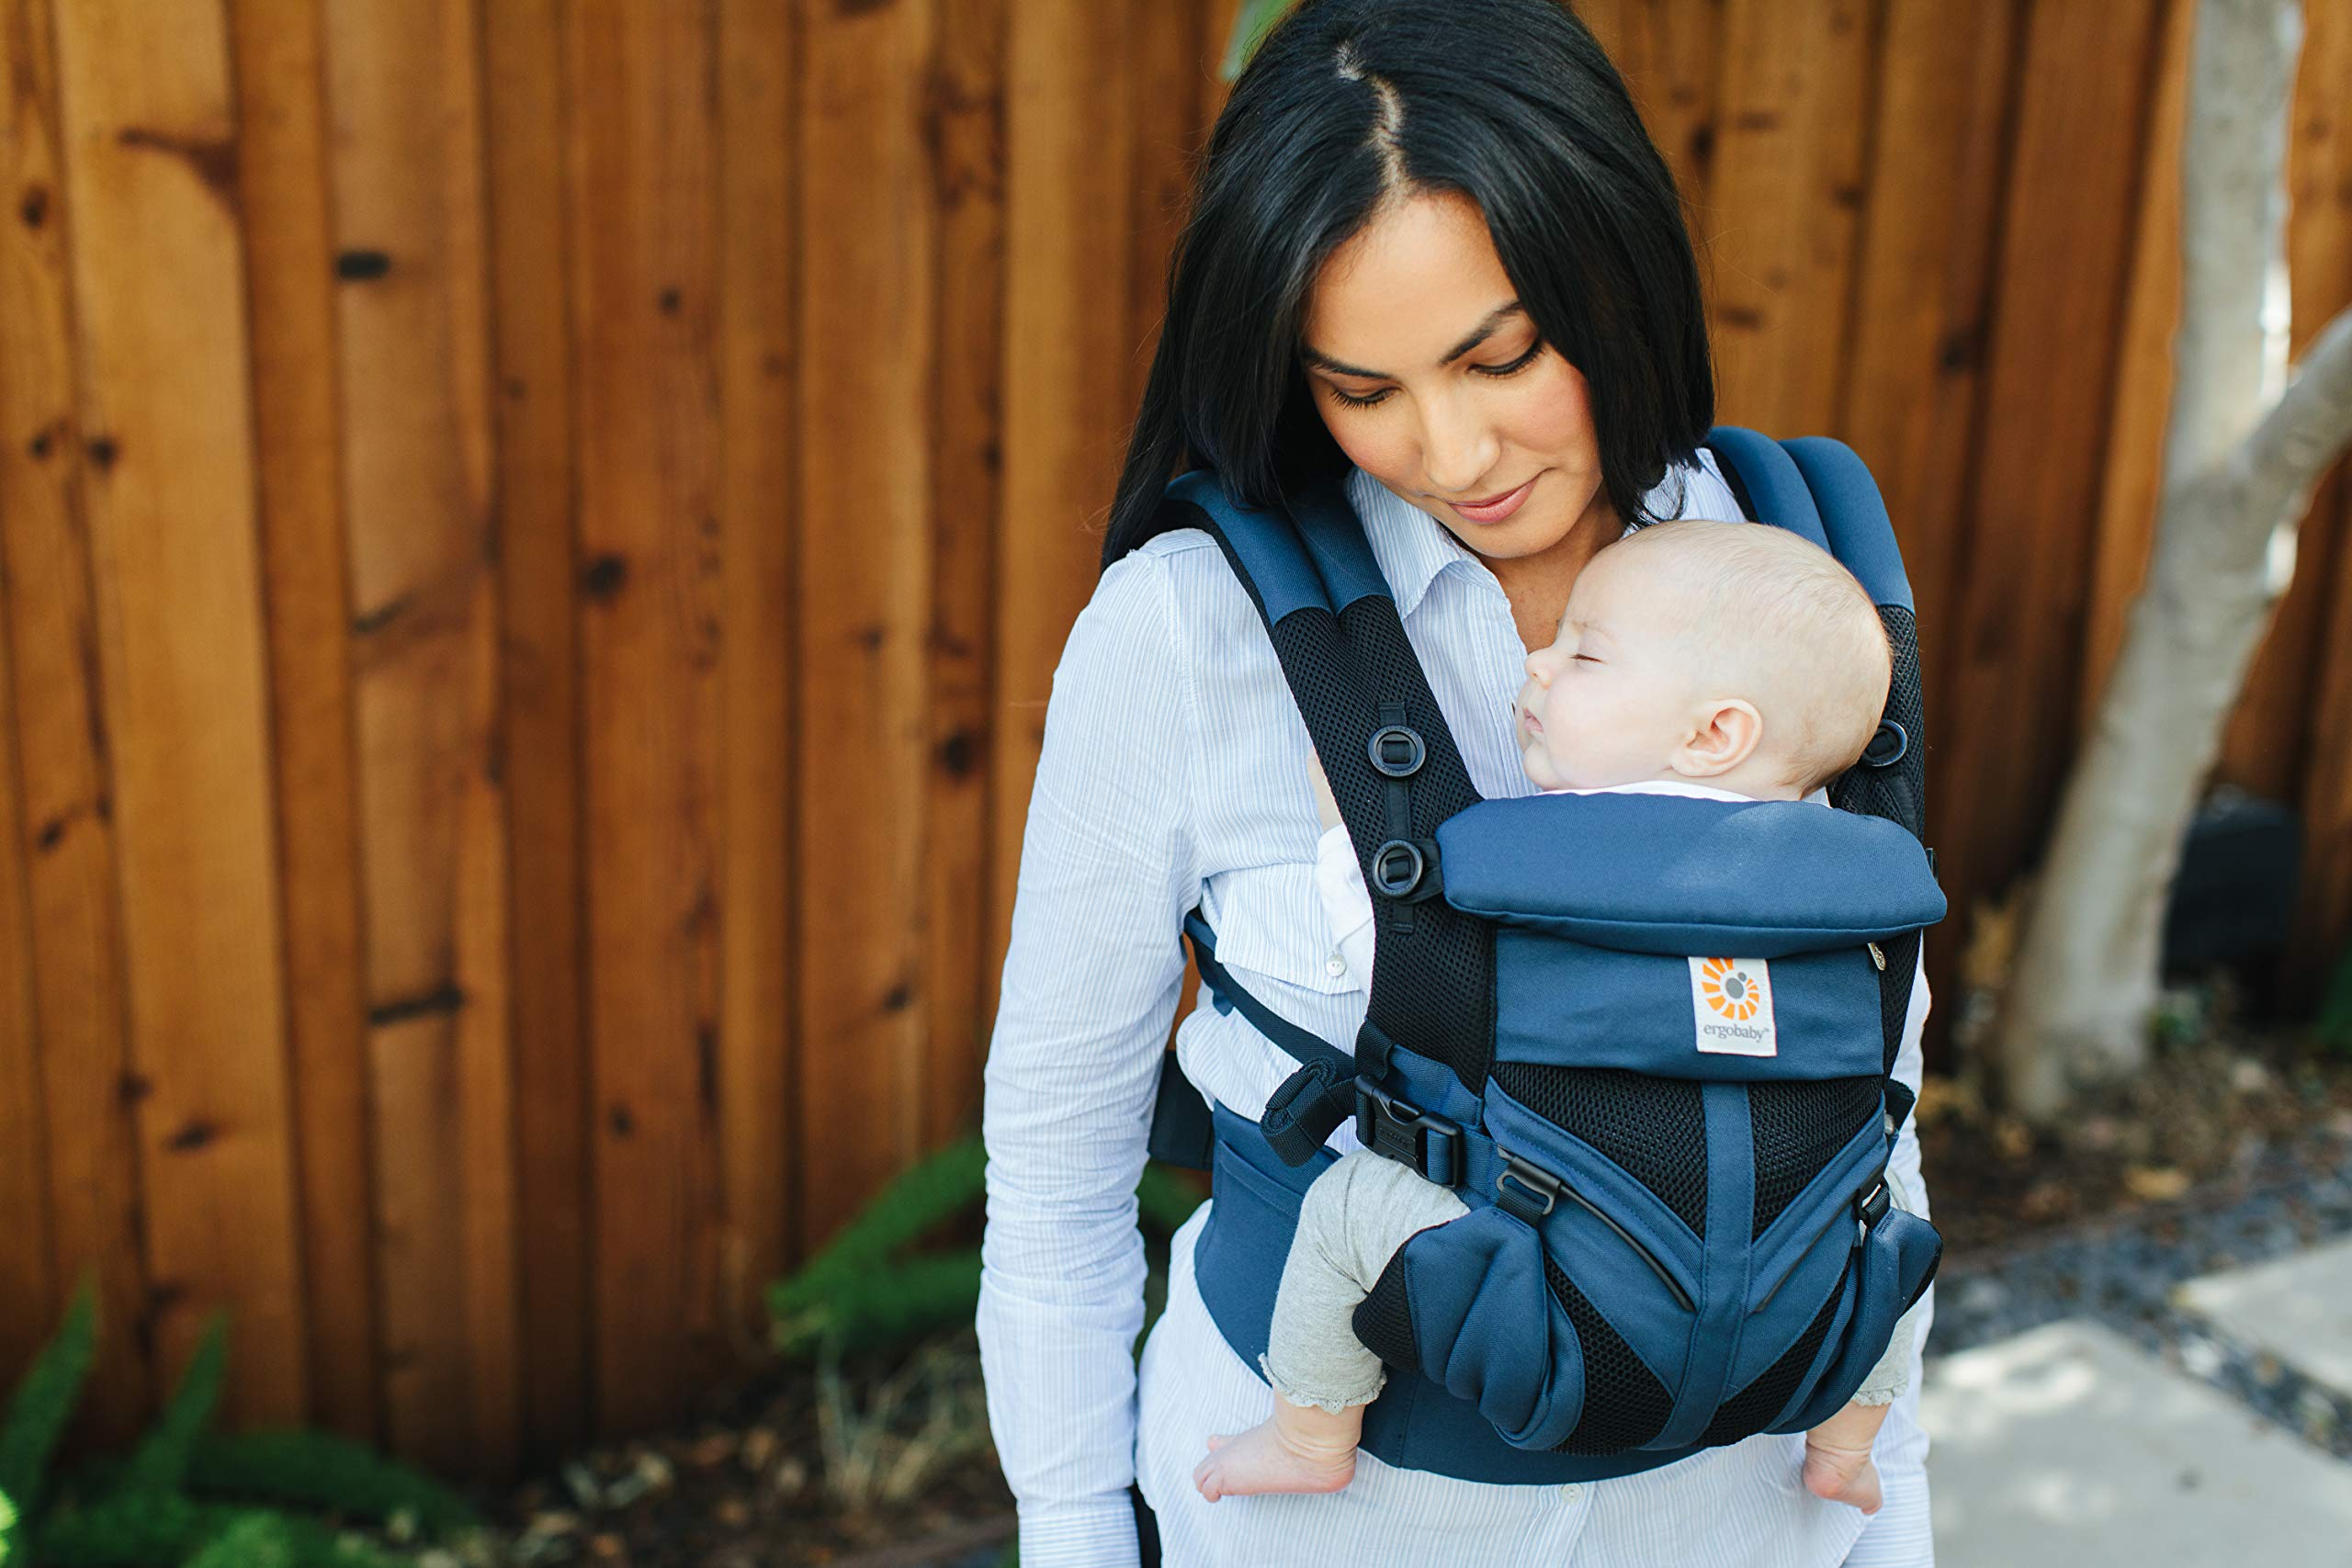 Ergobaby Omni 360 Cool Air Mesh, Raven Ergobaby Baby carrier for new-born - adapts to your growing baby from birth to toddler (7-45lbs). 4 carry positions: front-inward, back, hip, and front-outward Comfort - exceptional lower back comfort with padded lumbar support waist belt & extra padded shoulder straps with the option to wear 2 ways: crossed or backpack style Cool & breathable - our cool air mesh baby carriers are made with soft and durable mesh fabric that provides our renowned ergonomic support for baby 6